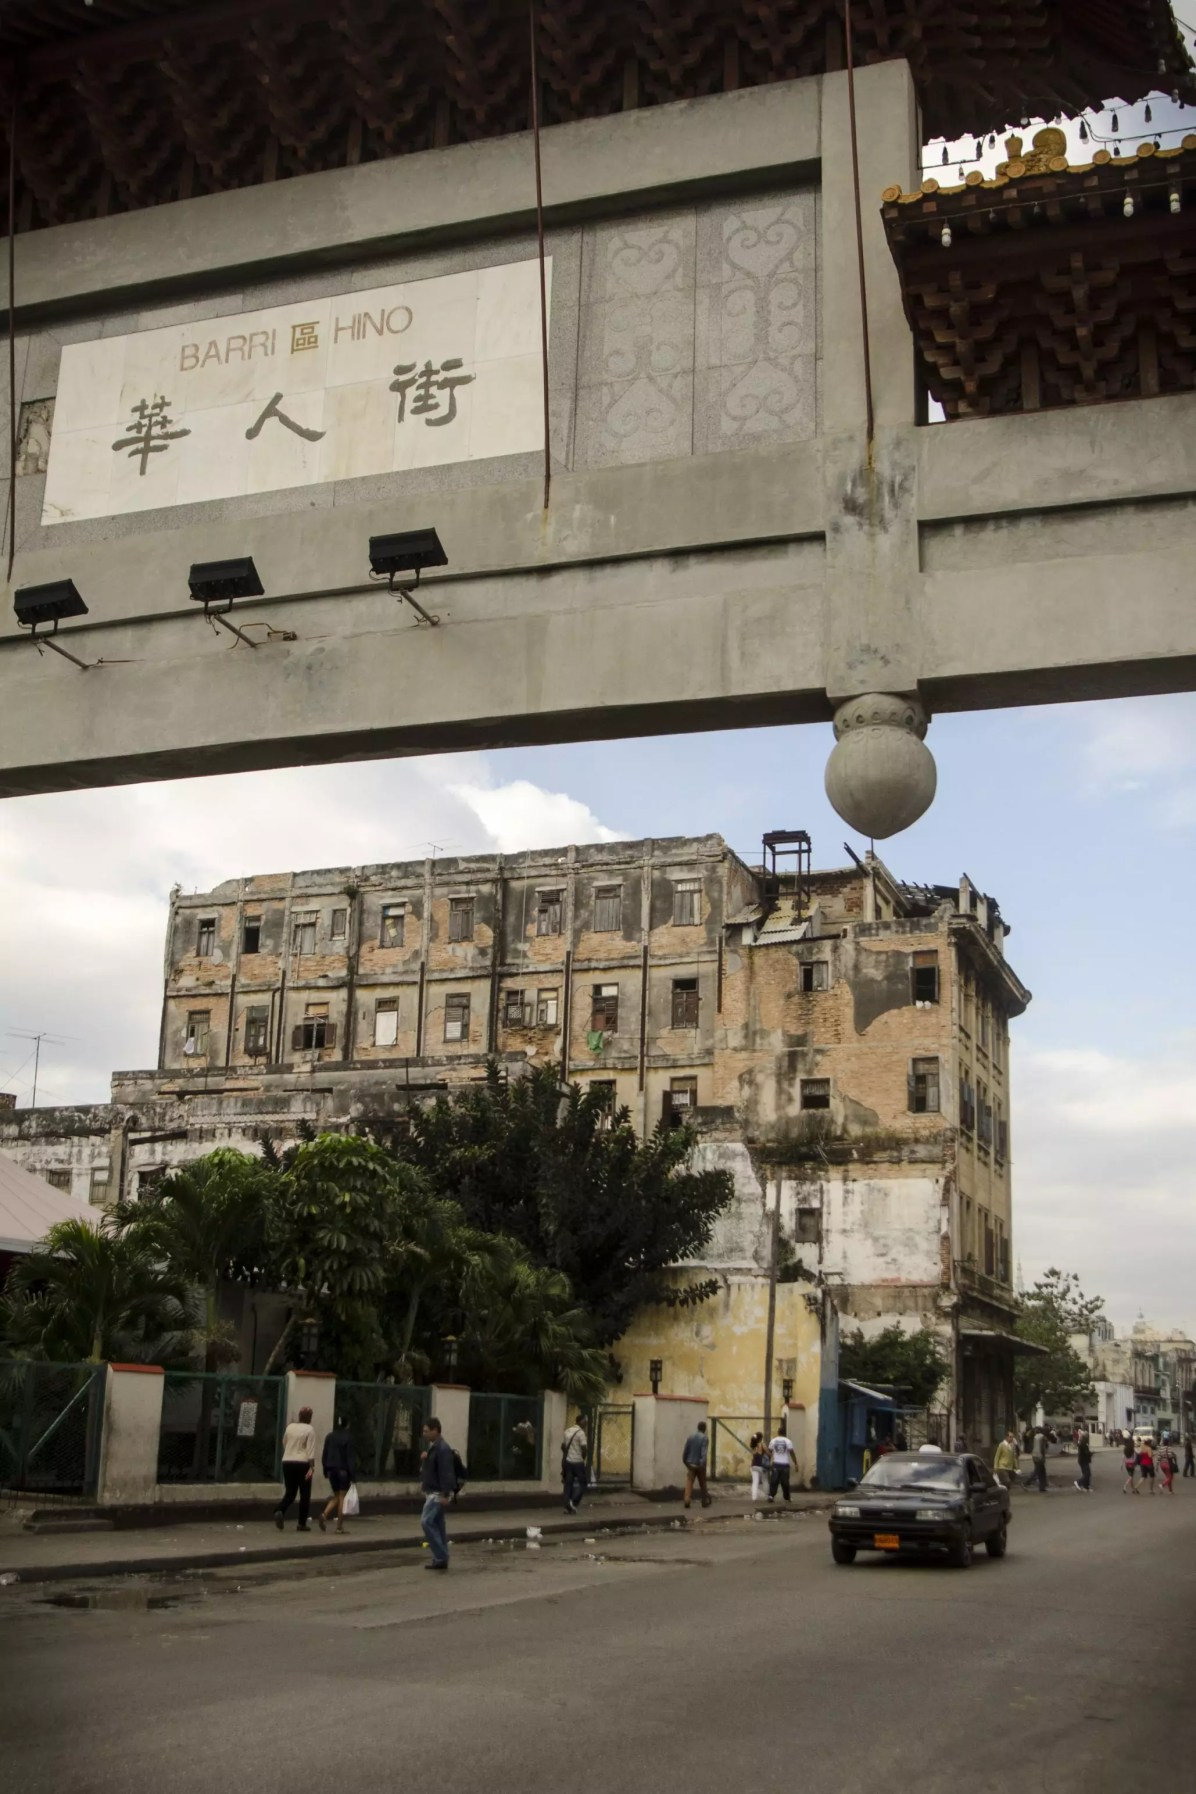 Things to do in Havana: Barrio Chino Where to stay in Havana